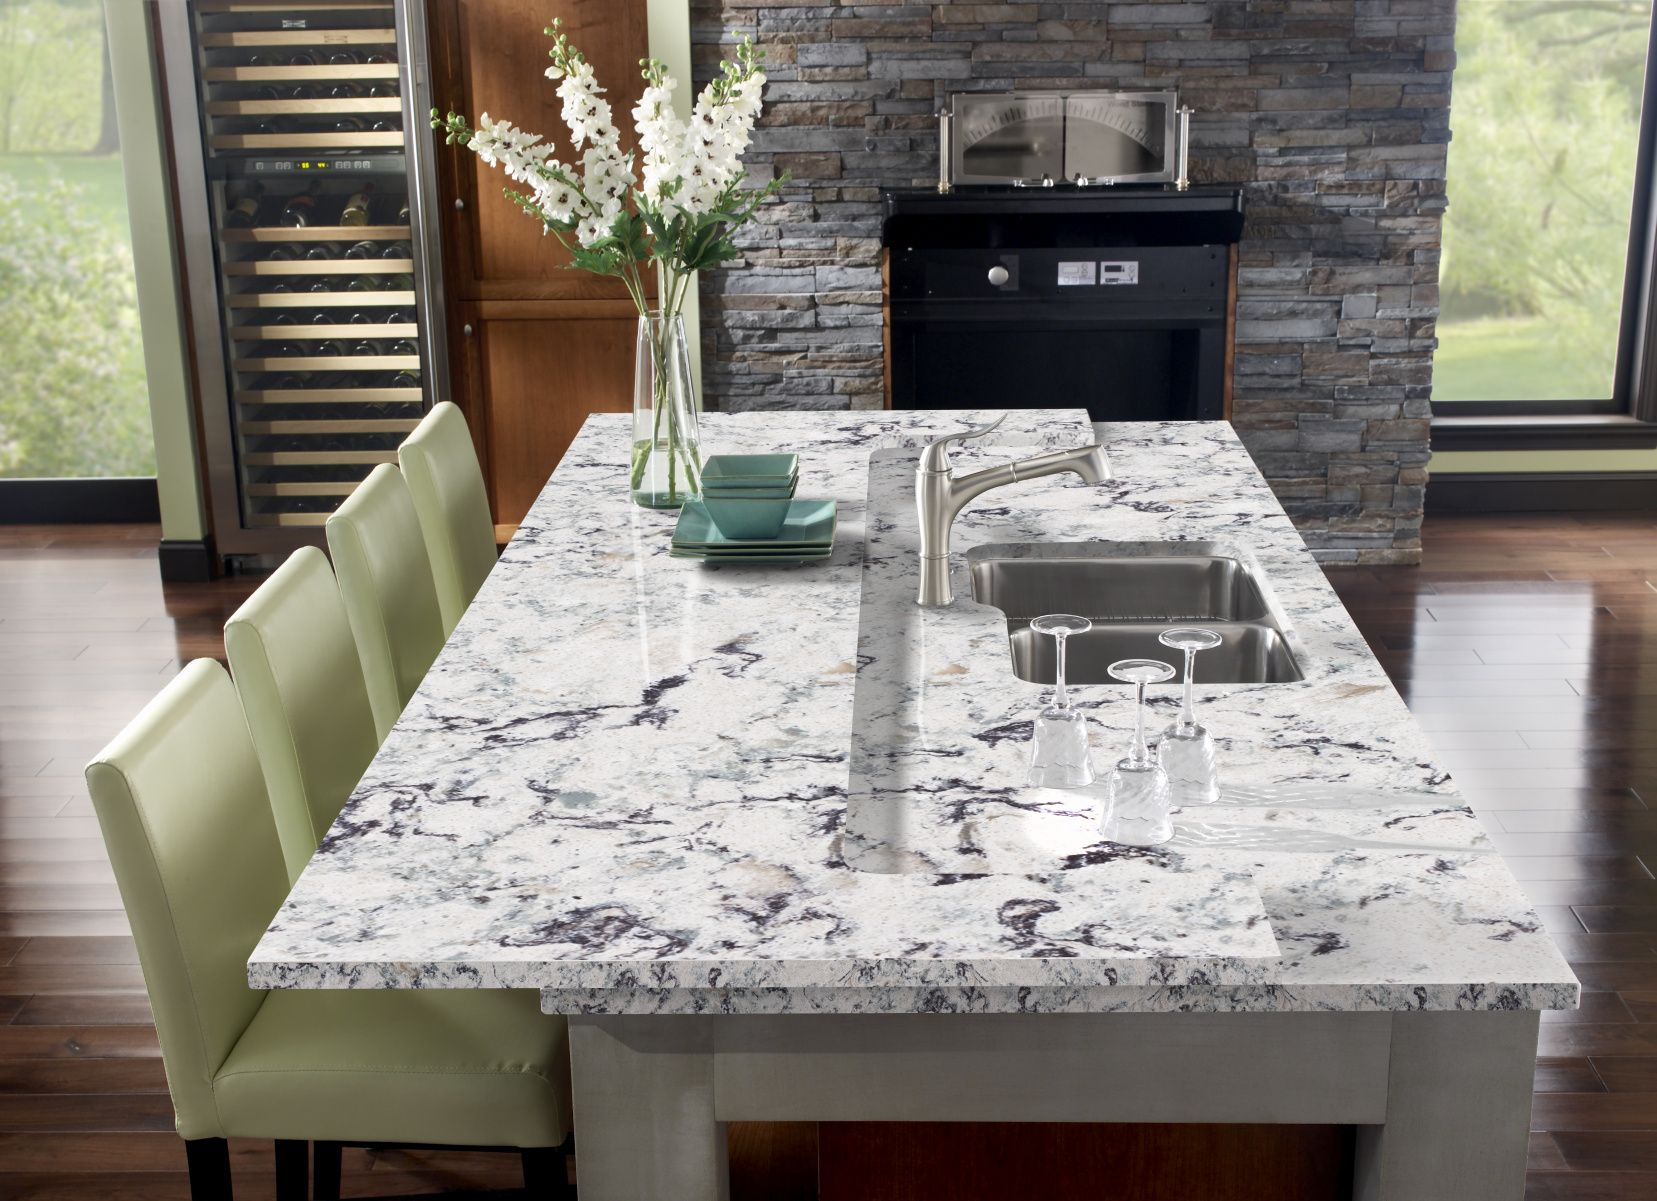 77 Oyster Quartz Countertop Remodeling Ideas For Kitchens Check